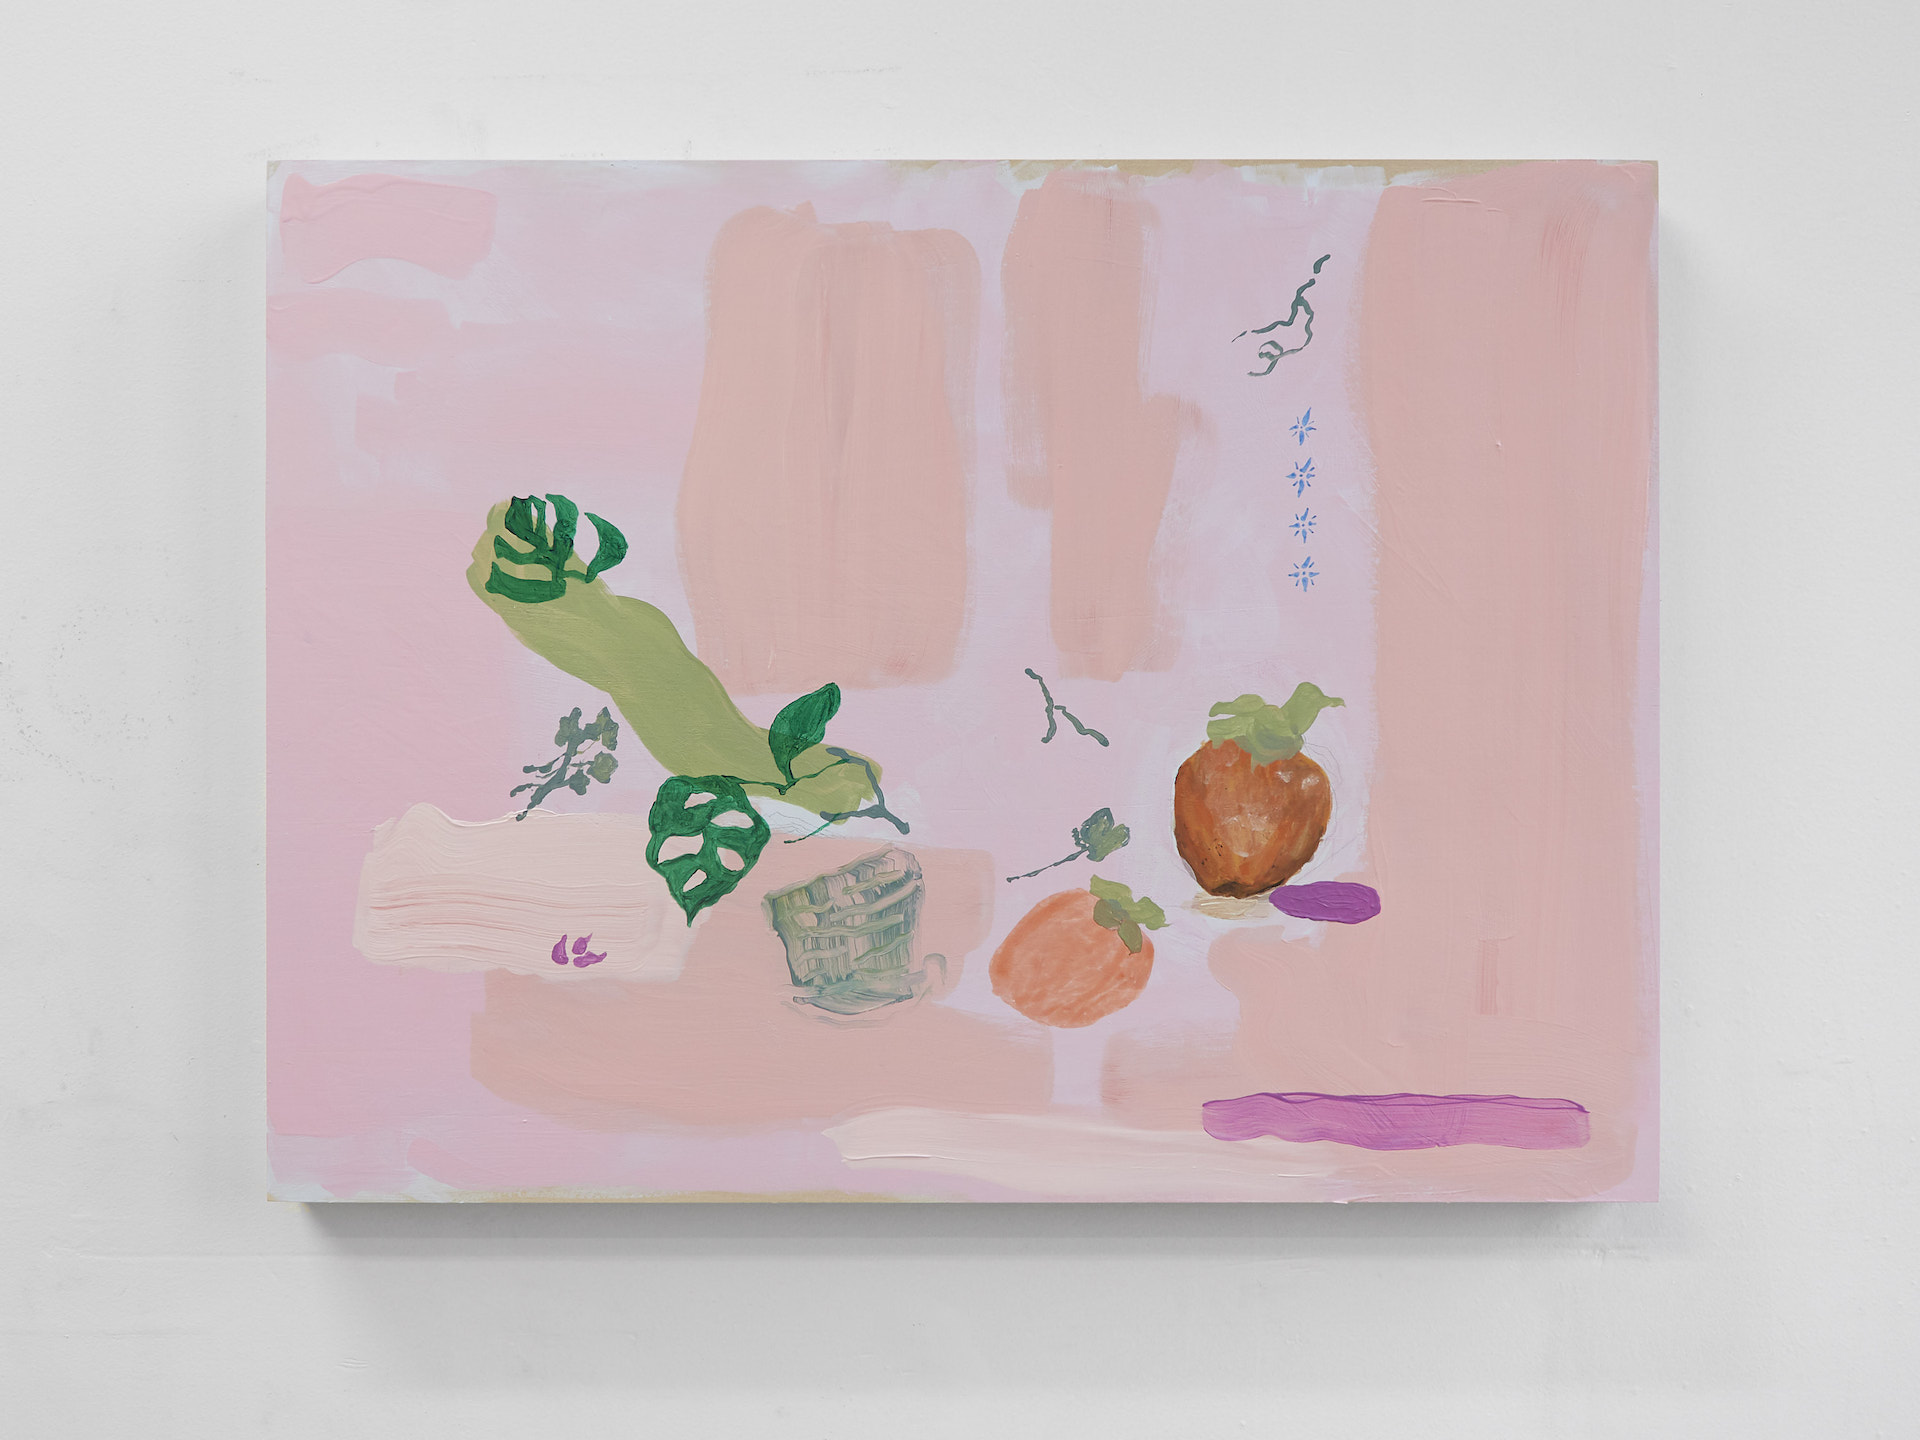 Angela Zhang, Still life with monstera and persimmons, 2017, acrylic and marker on wood panel, 18 x 24 in